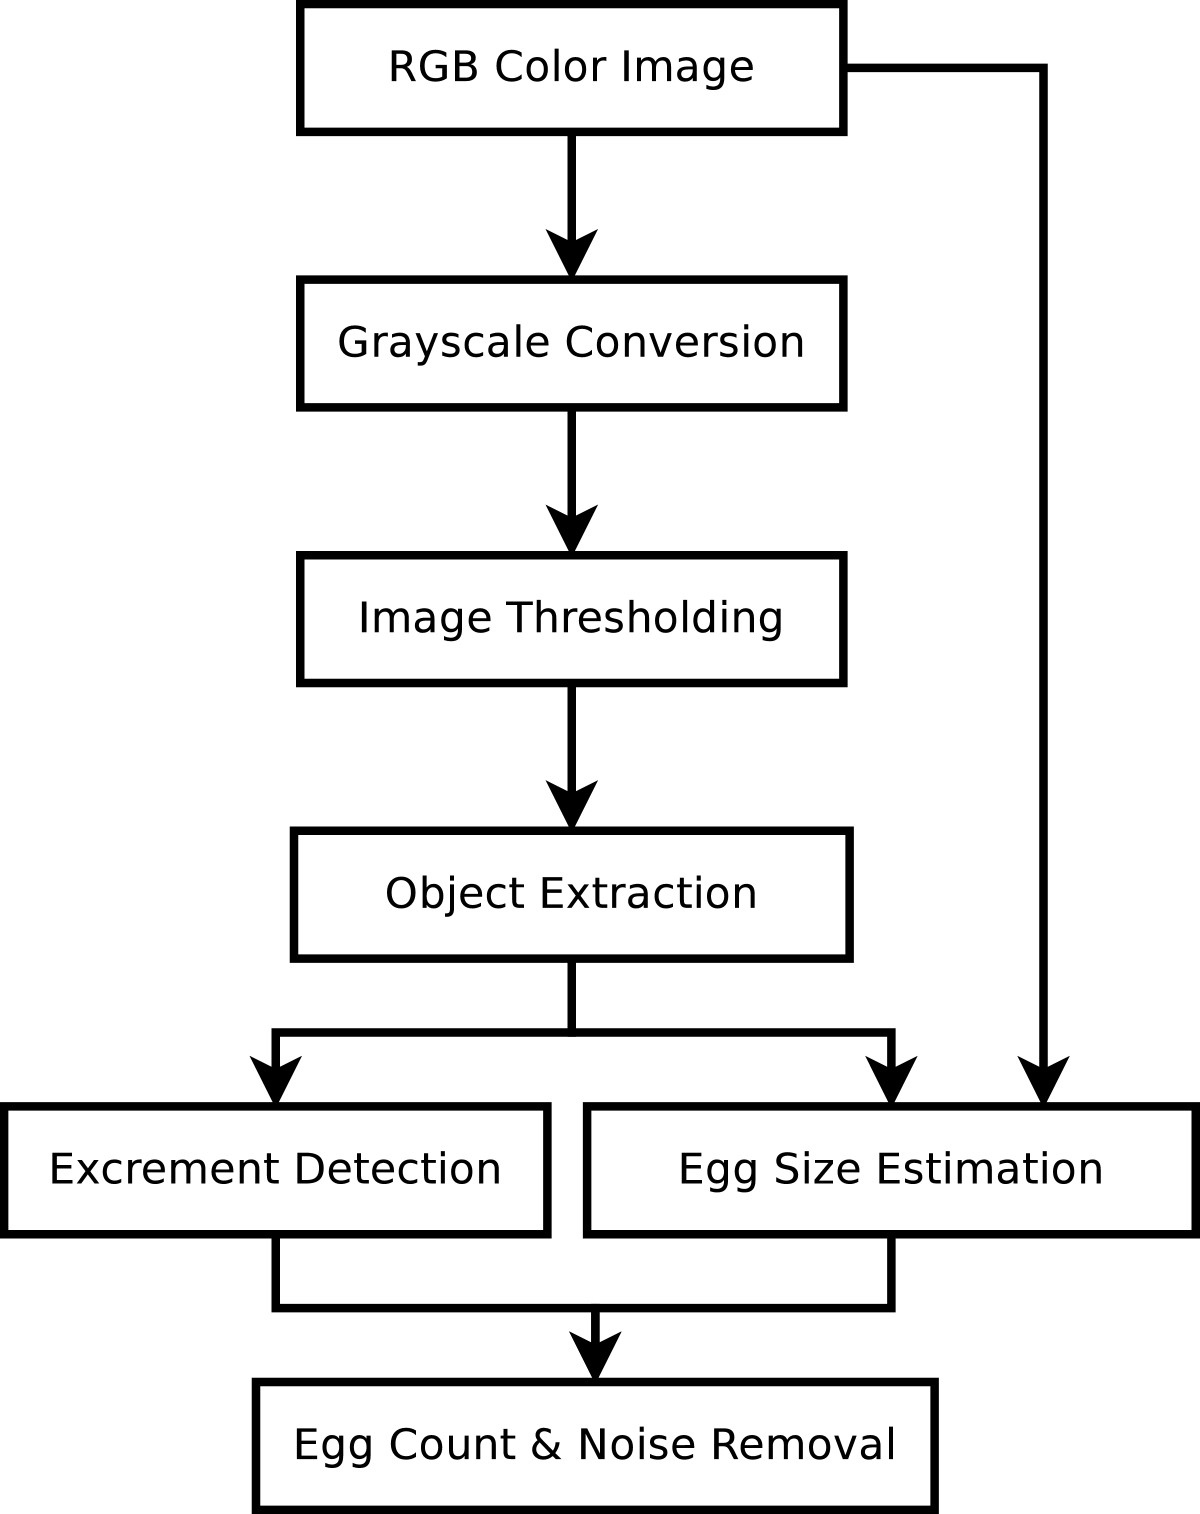 http://static-content.springer.com/image/art%3A10.1186%2F1756-3305-5-122/MediaObjects/13071_2012_Article_649_Fig1_HTML.jpg